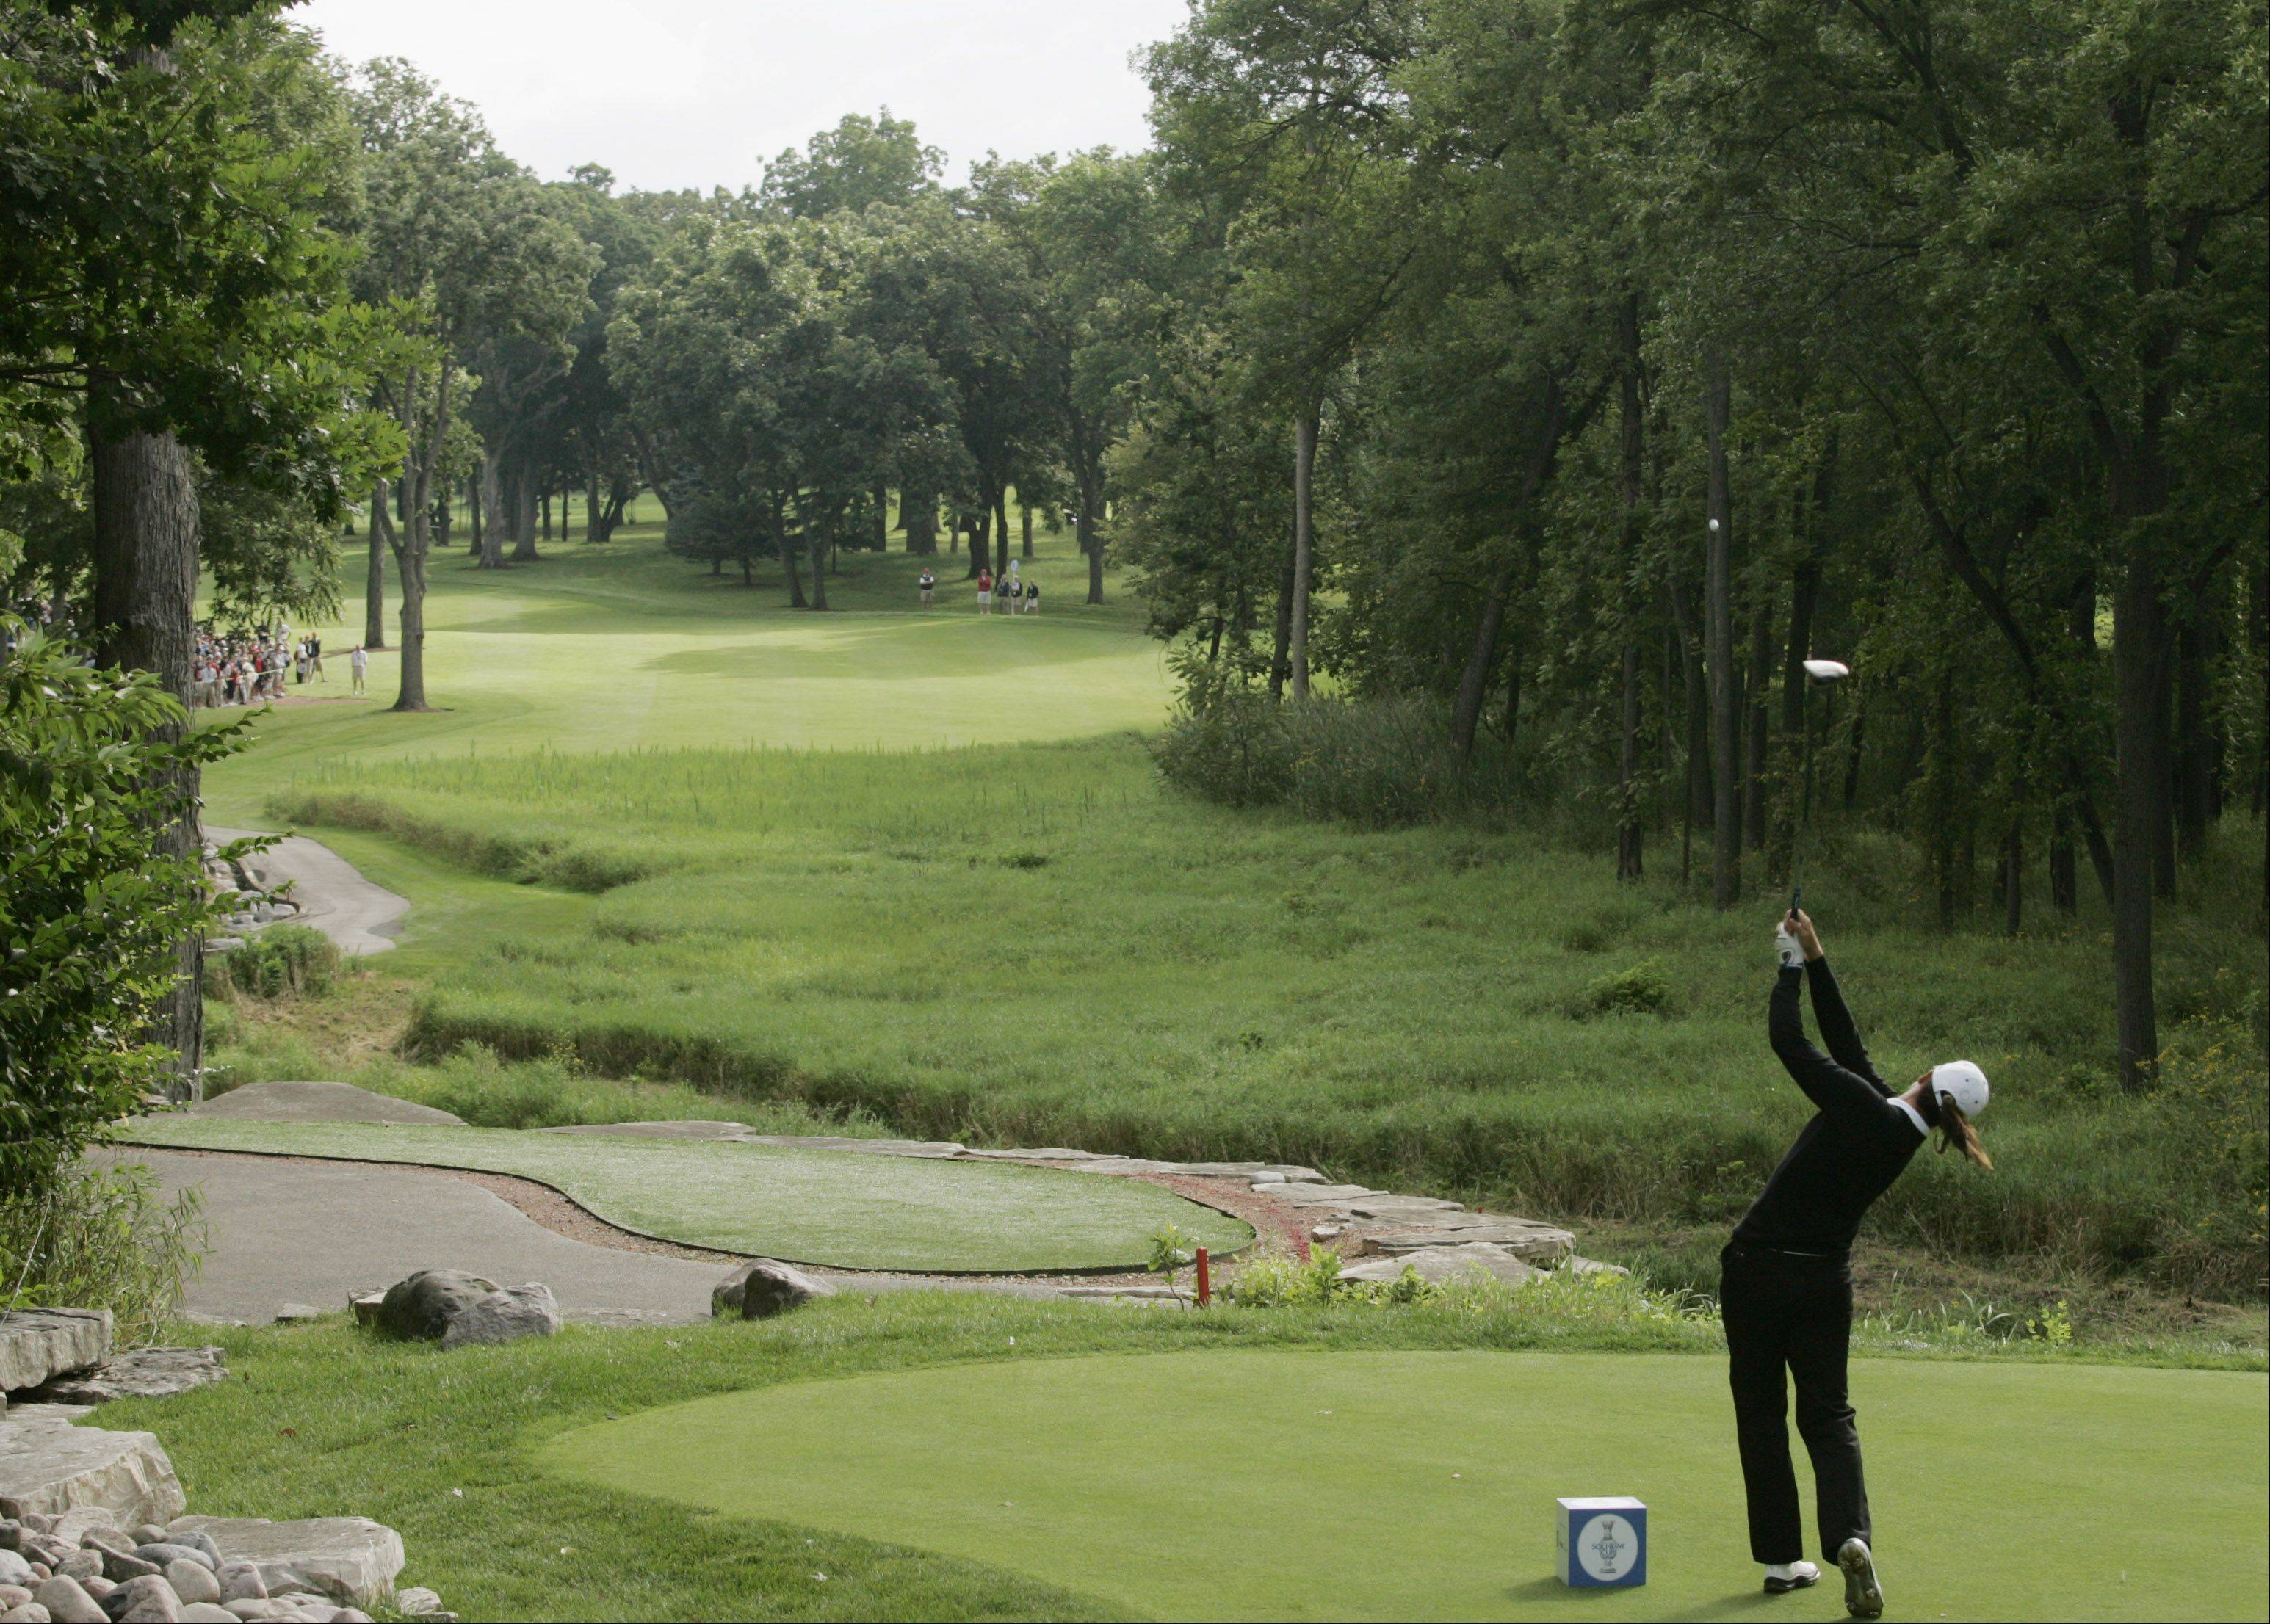 The picturesque Rich Harvest Farms was site of the 2009 Solheim Cup. The course has been picked to host a new LPGA event in 2016.